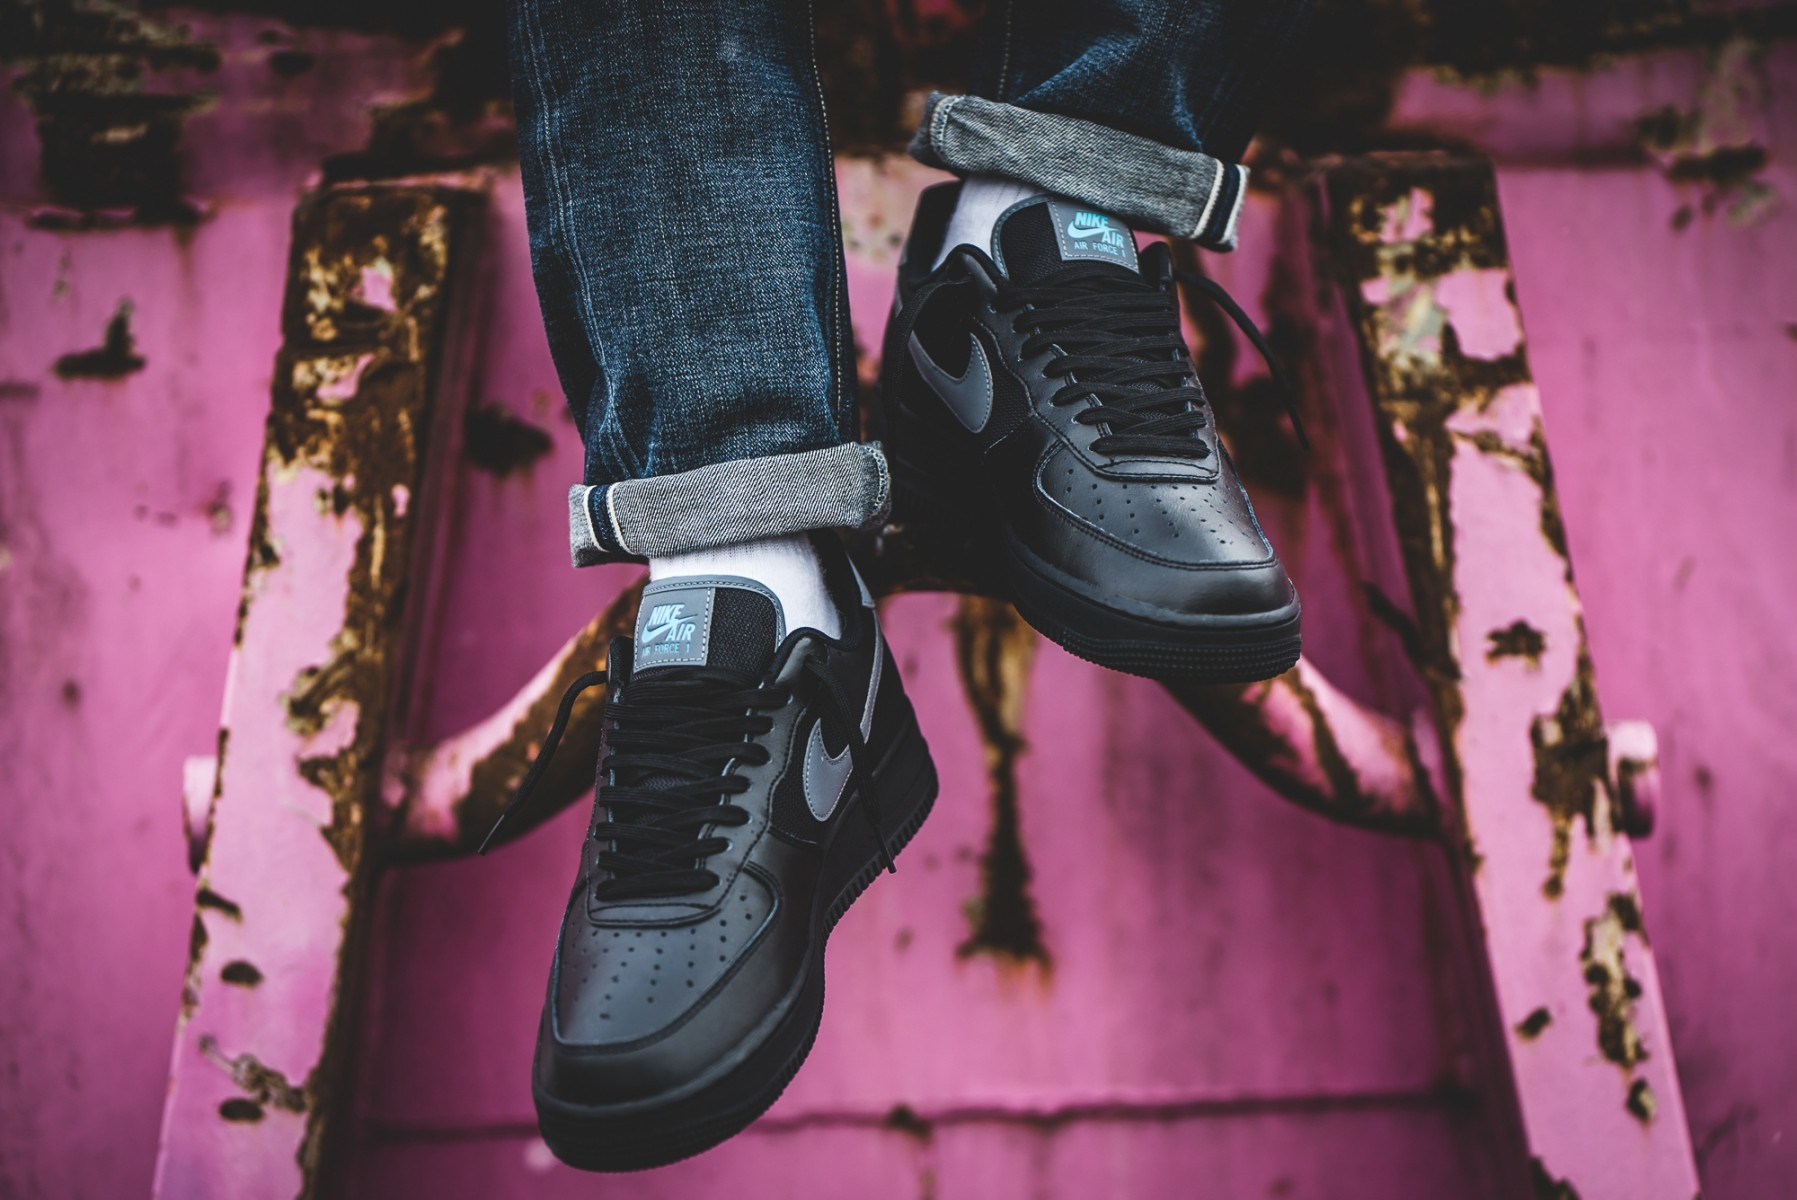 Nike Air Force 1 Low (Negras/Azul claro) BV1278-001